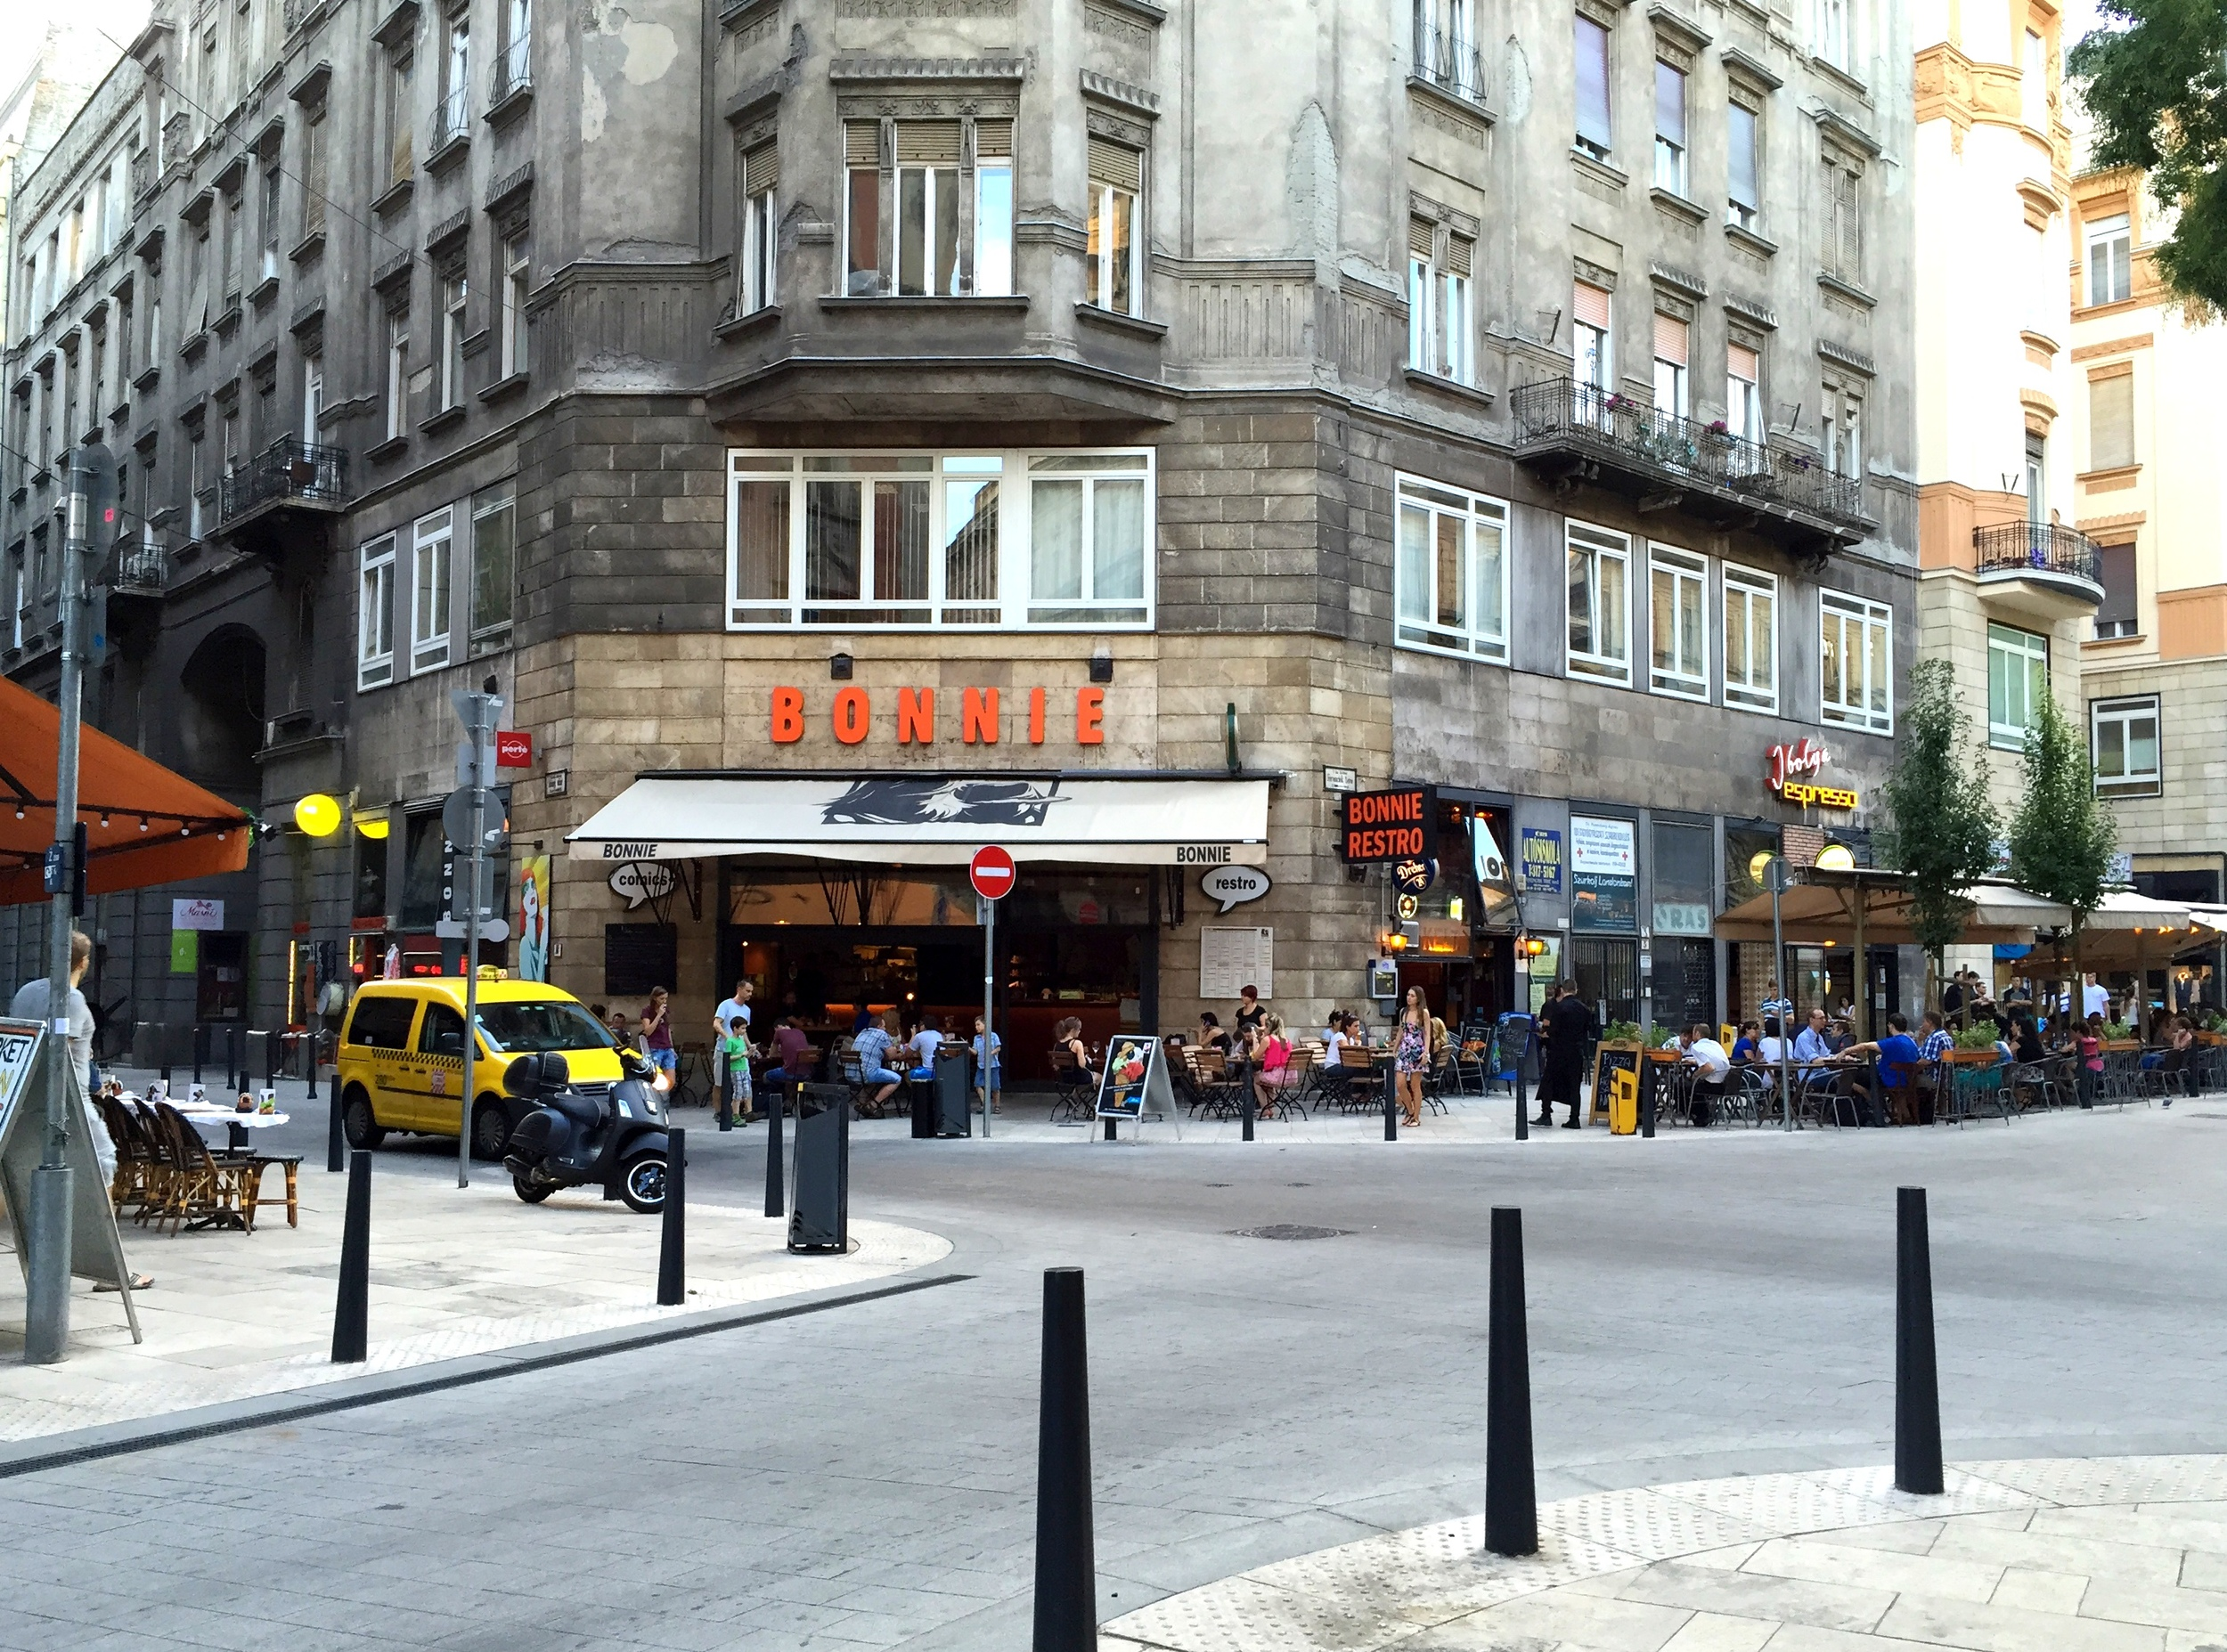 A typical street corner is lined with cafes and restaurants in the city center.